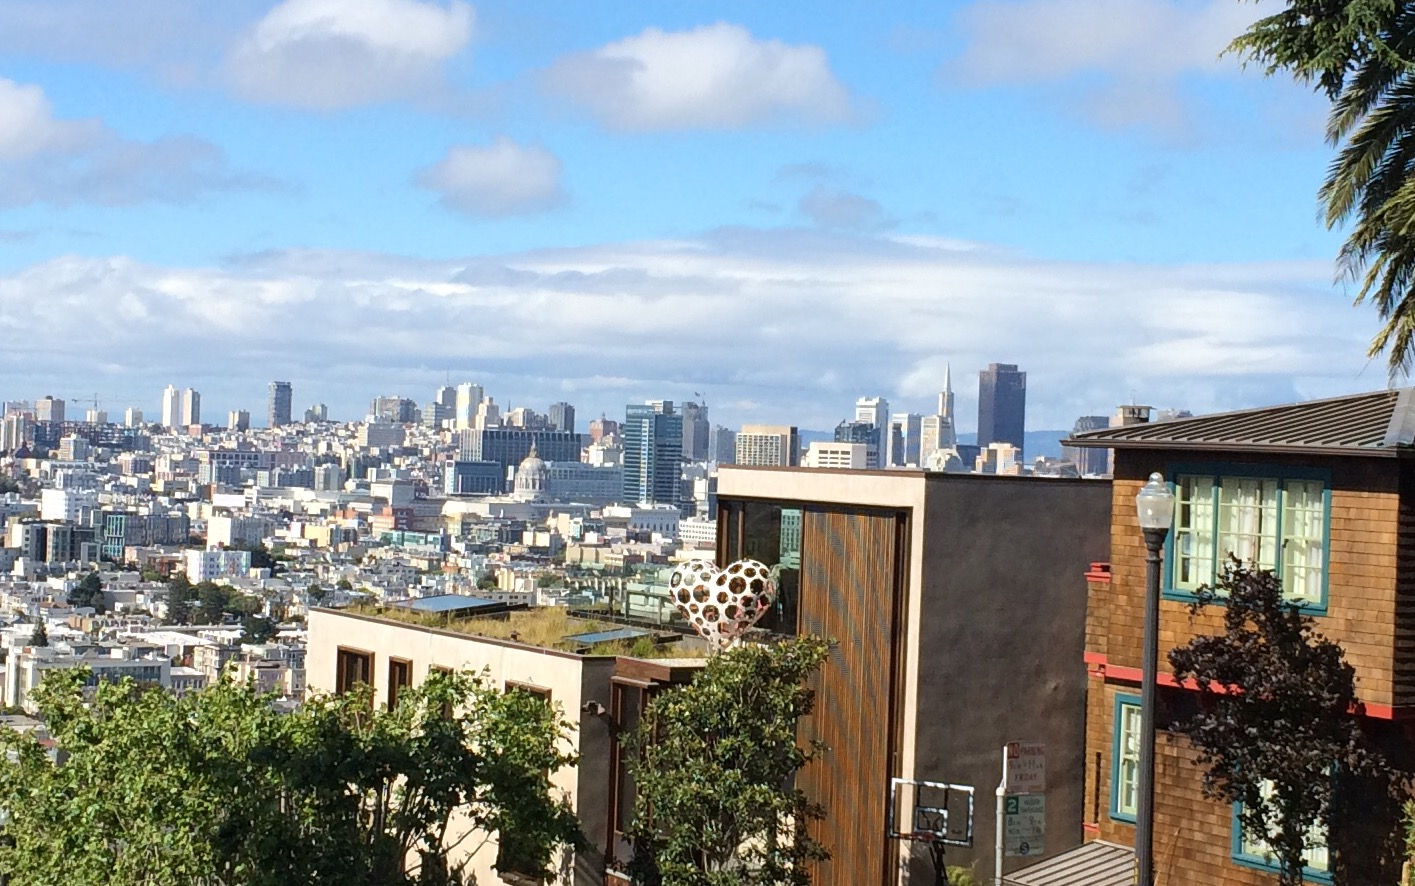 Hilltop view from Potrero Hill | Courtesy of Edward Whitmore